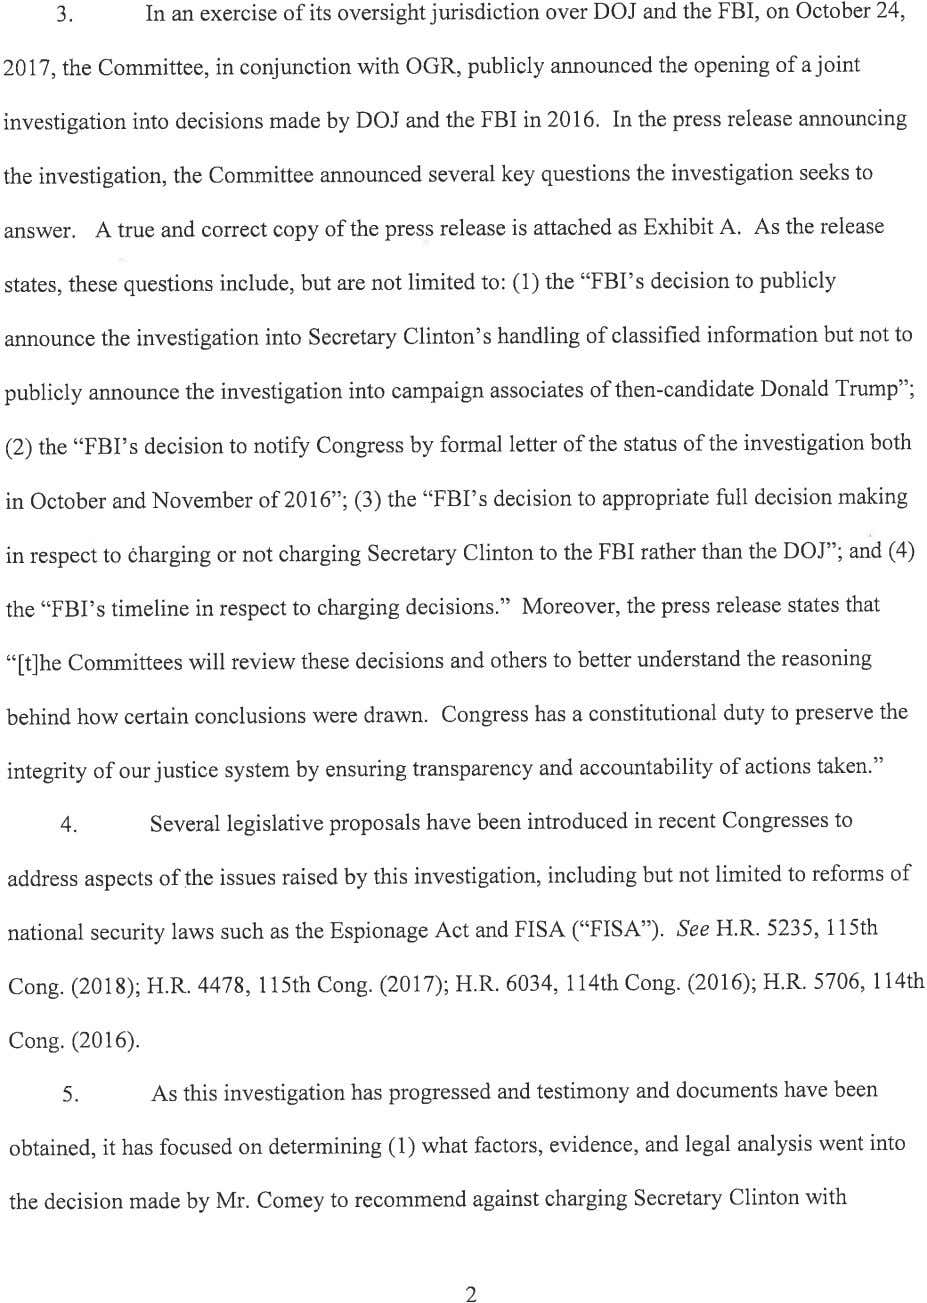 Case 1:18-mc-00174-TNM Document 11-1 Filed 11/30/18 Page 2 of 6